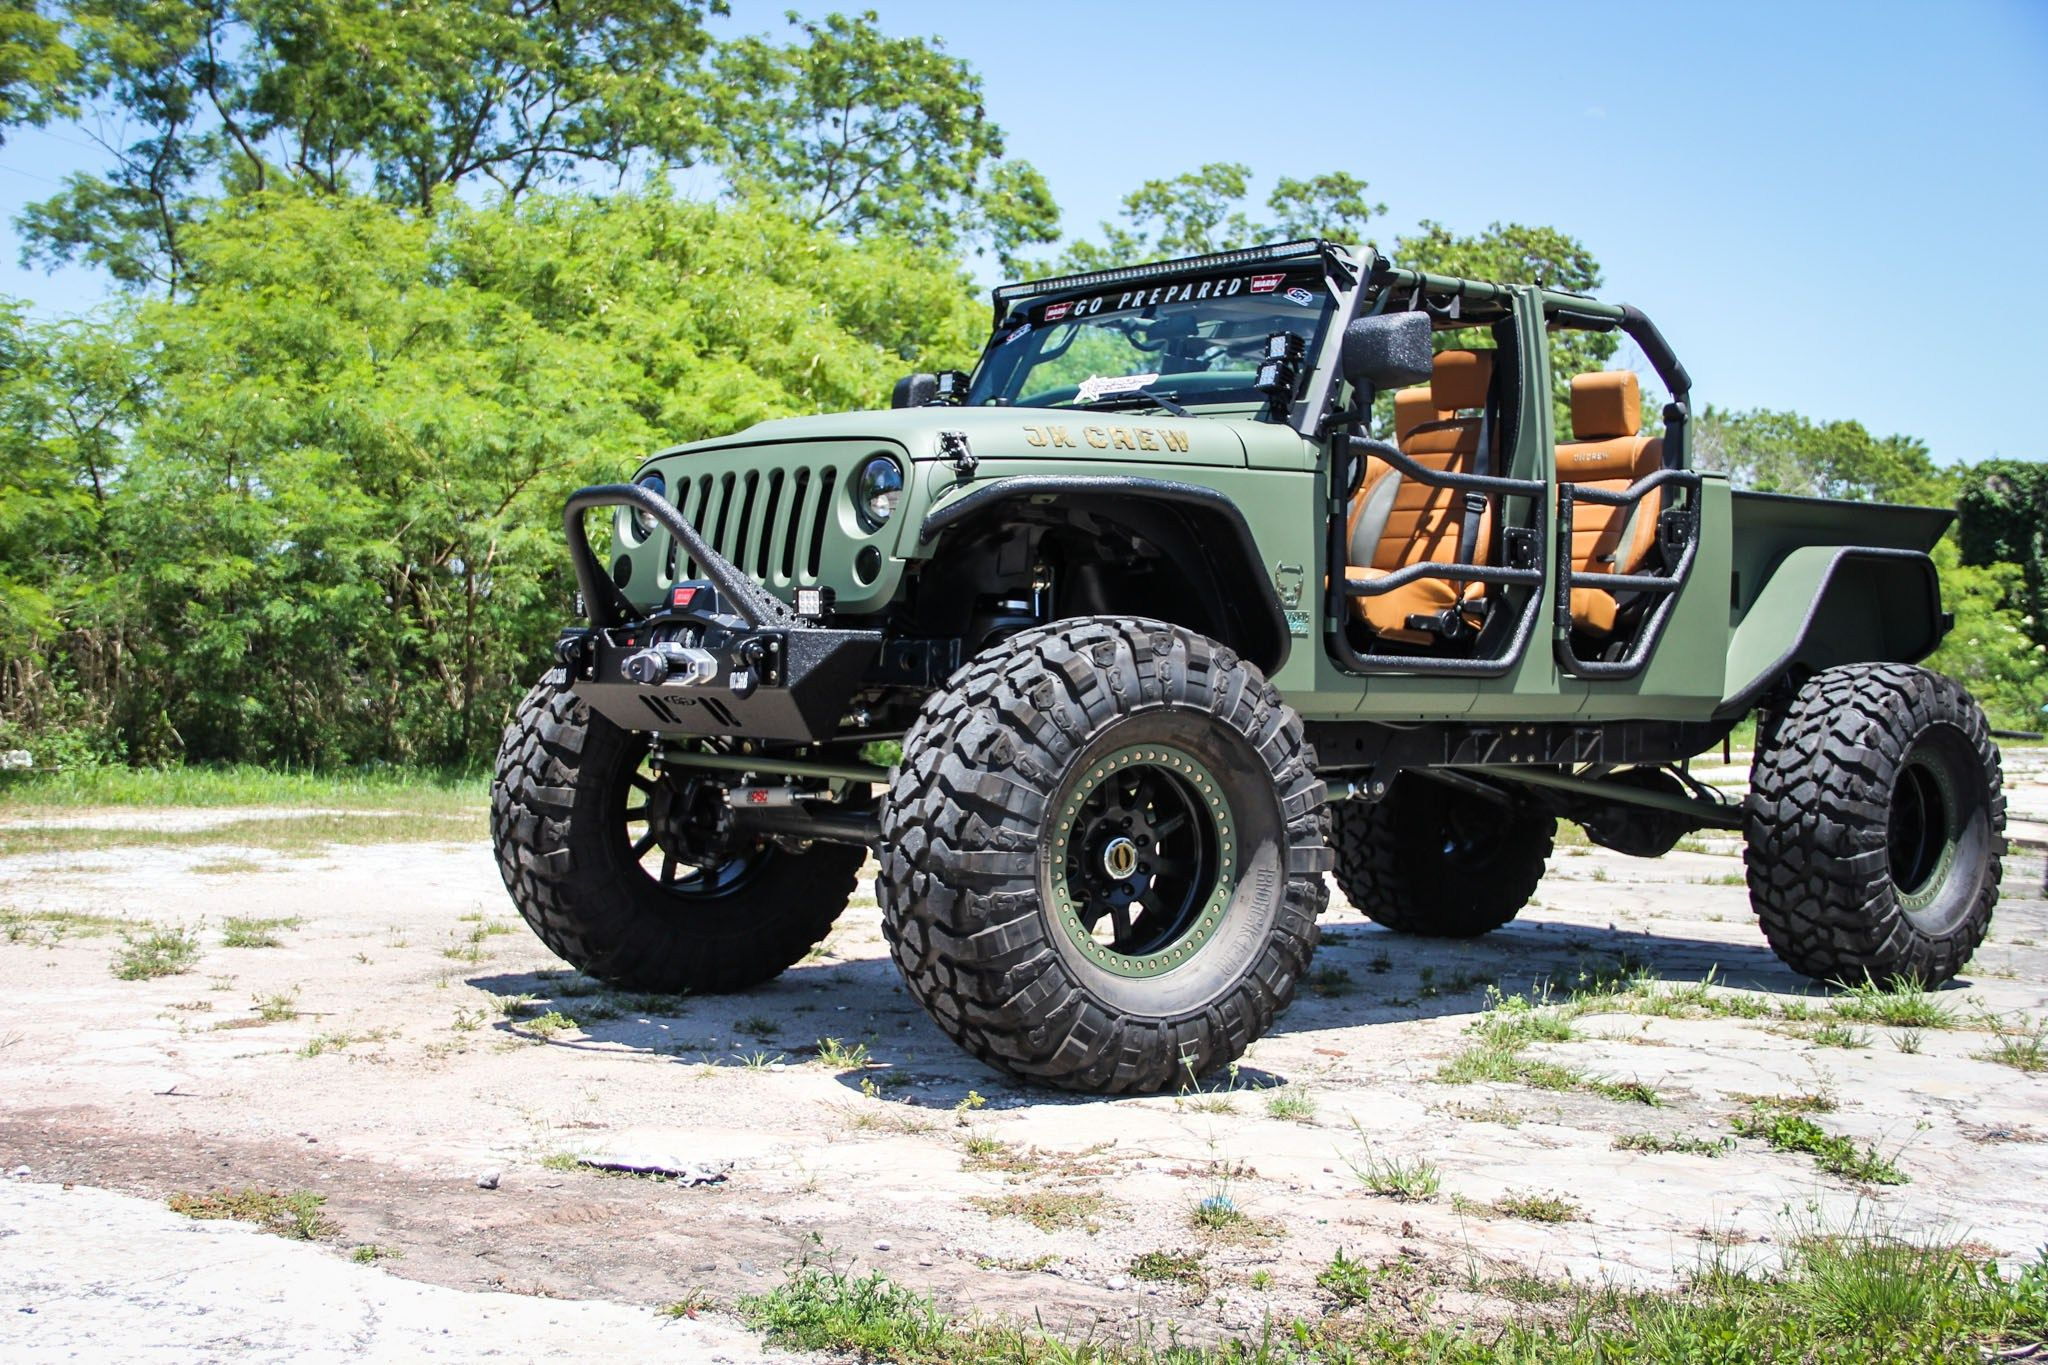 Jeep Wrangler Truck Conversion Meet the JK Crew The JK Crew is our